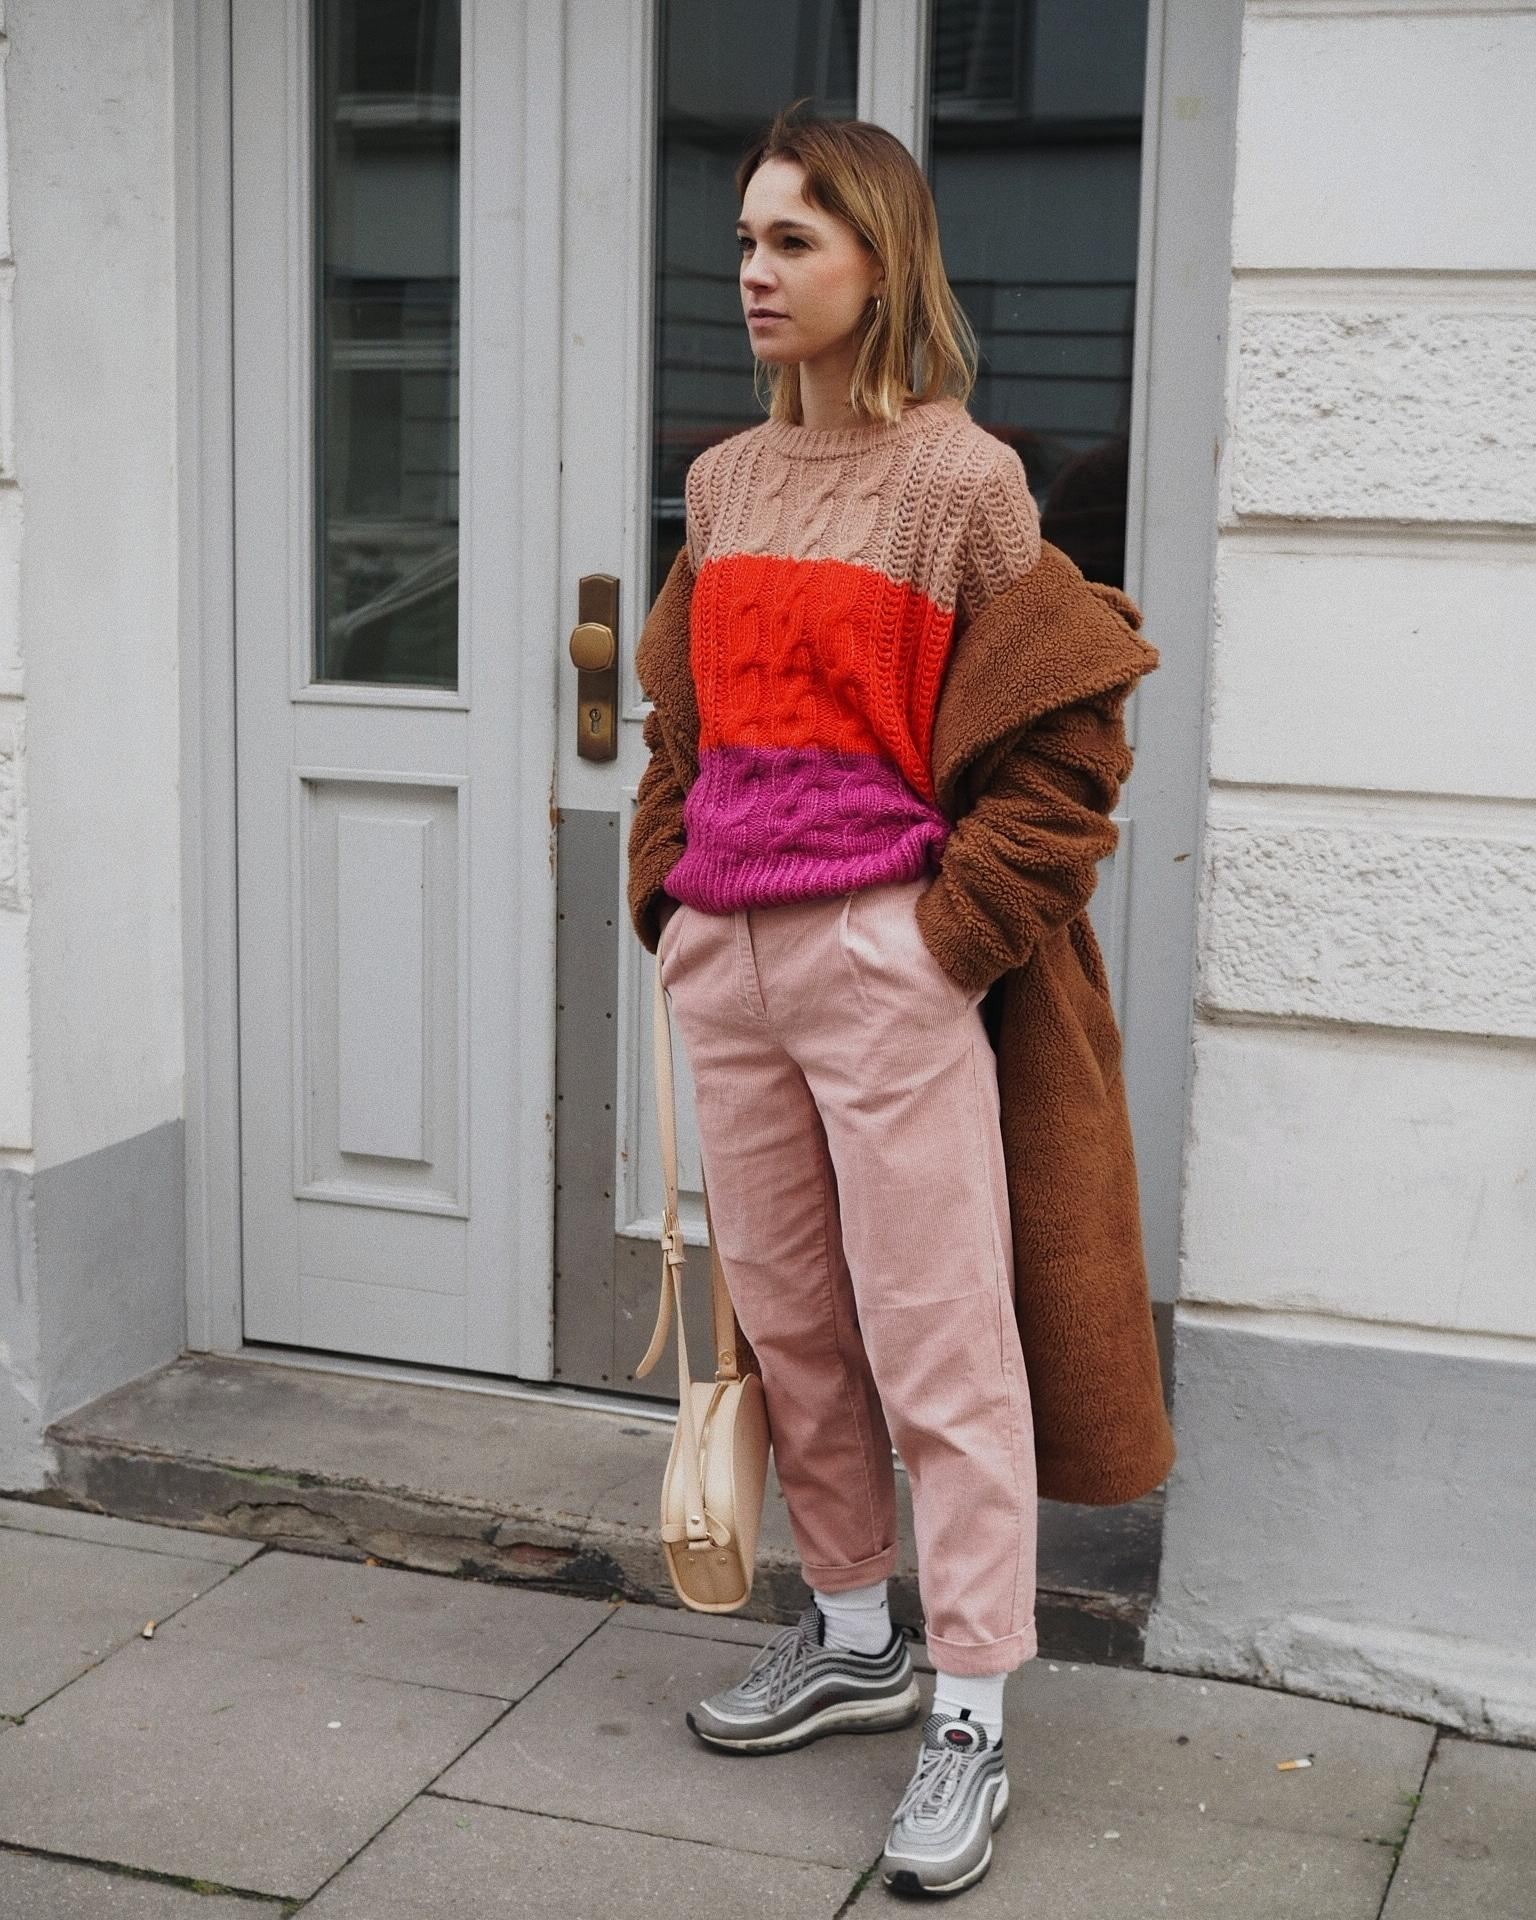 Colour blocking ❤️ 💜 #fashion #streetfashion #streetstyle #outfit #fashioncrush #winteroutfit